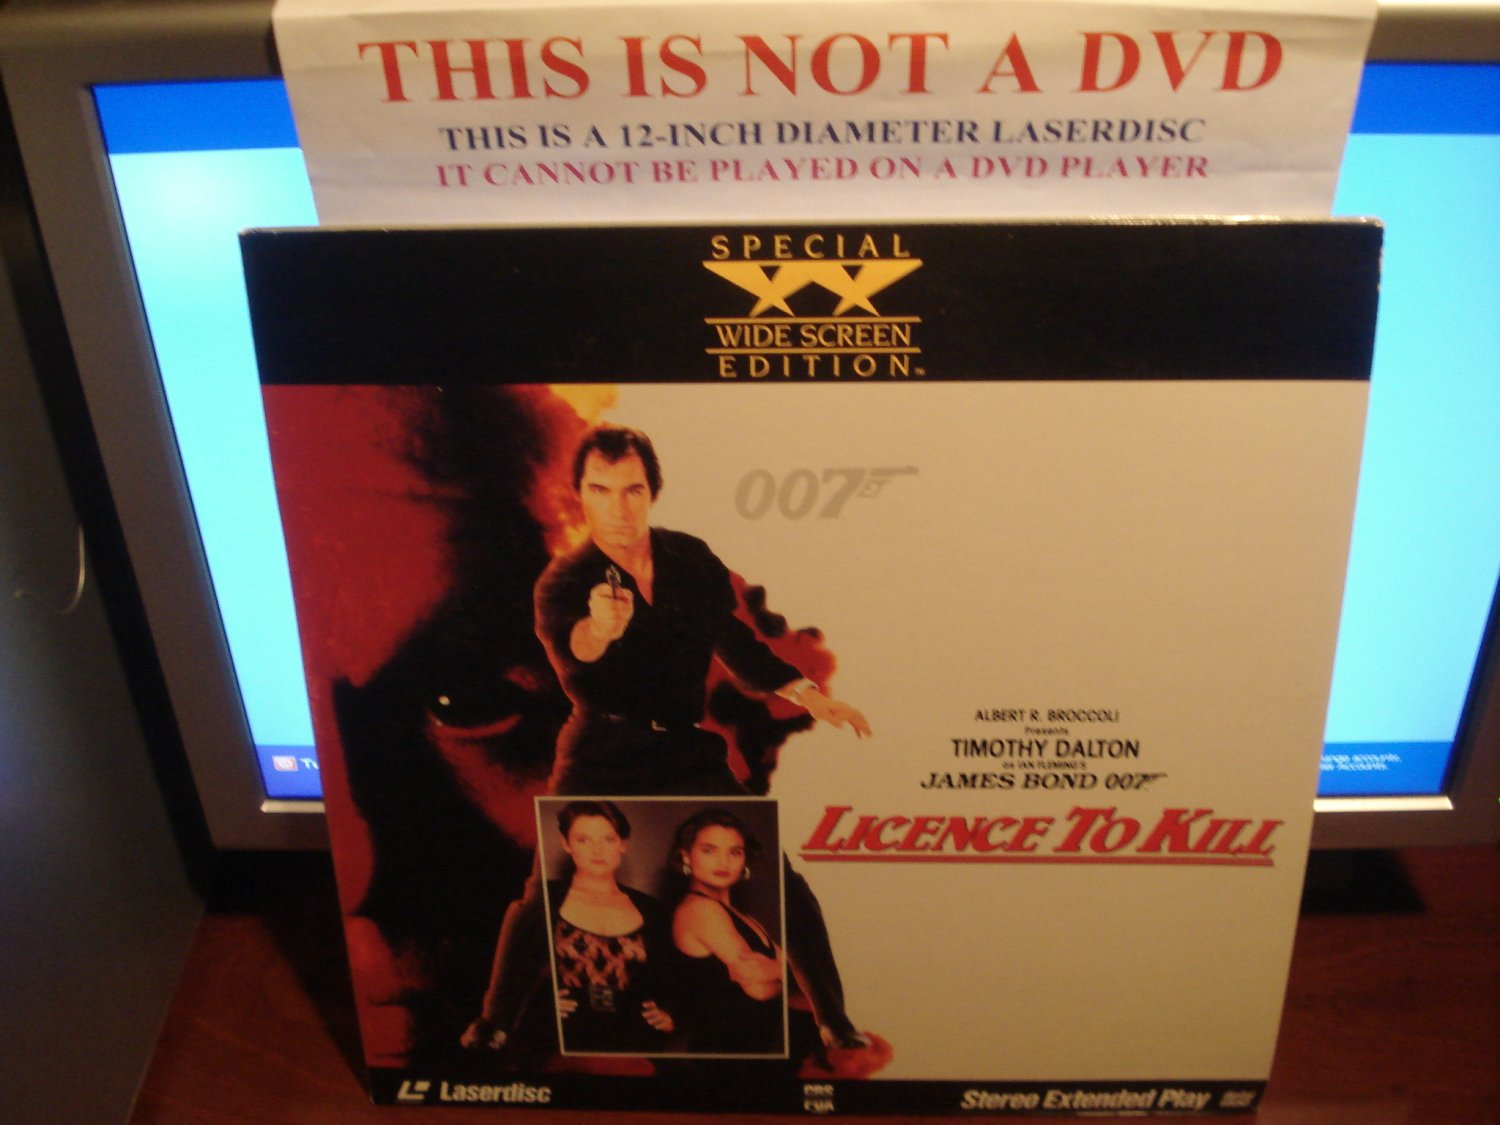 Laserdisc LICENCE TO KILL 1989 Timothy Dalton James Bond 007 Lot#4 SWE LD Movie [4755-80]